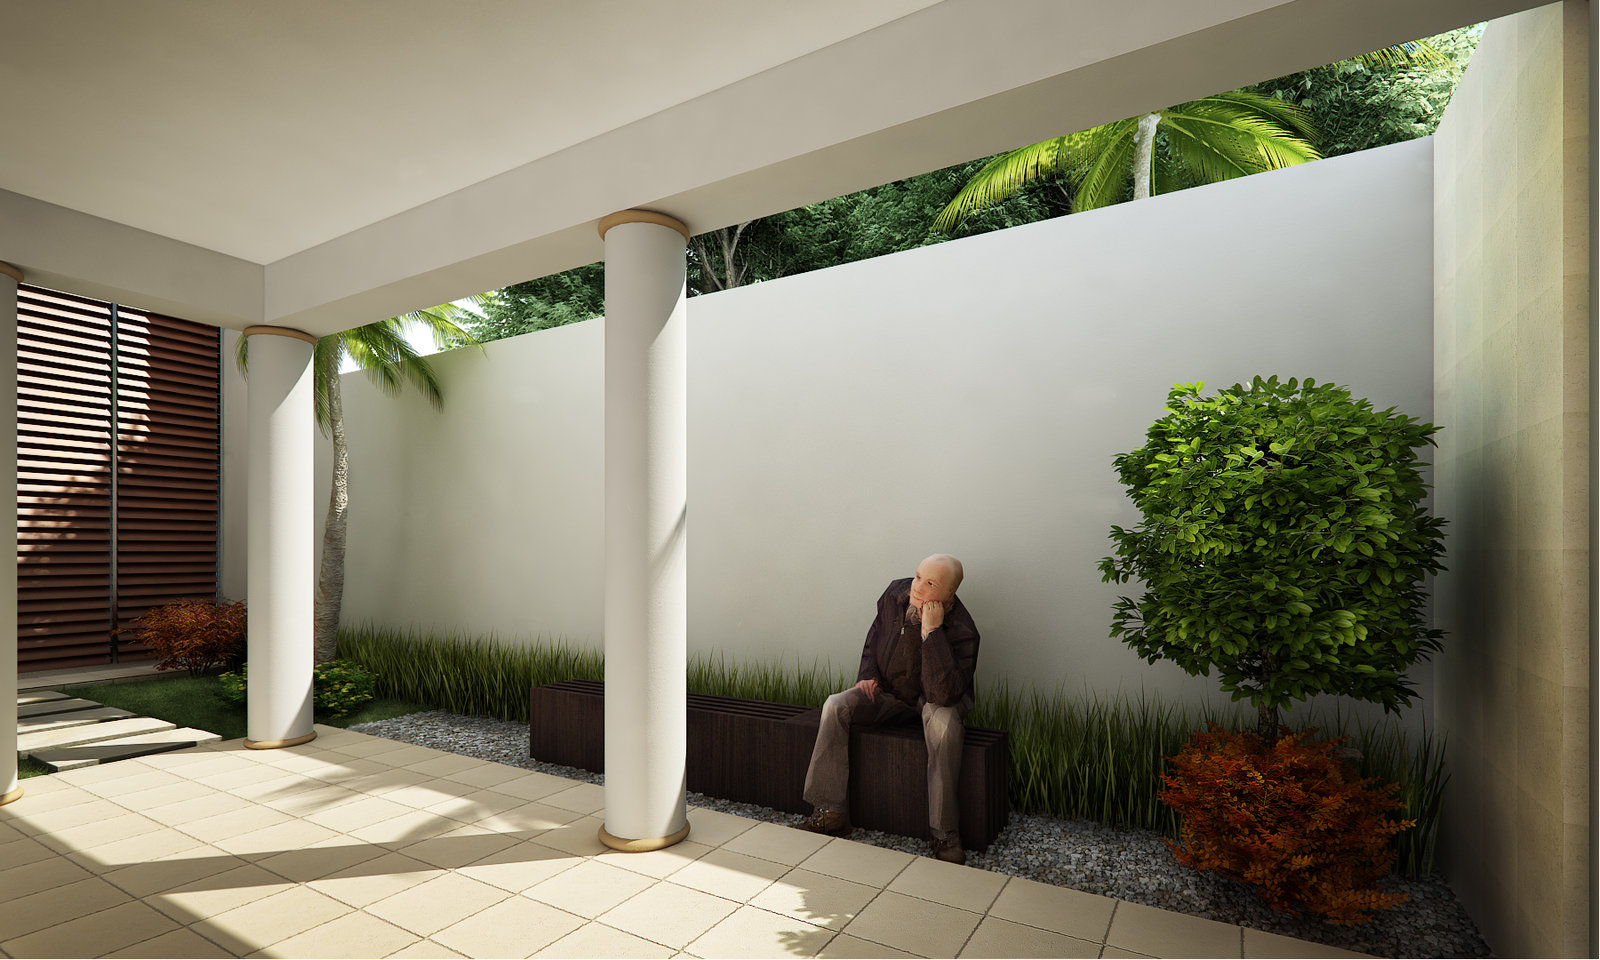 Courtyard design and landscaping ideas for Small indoor patio ideas